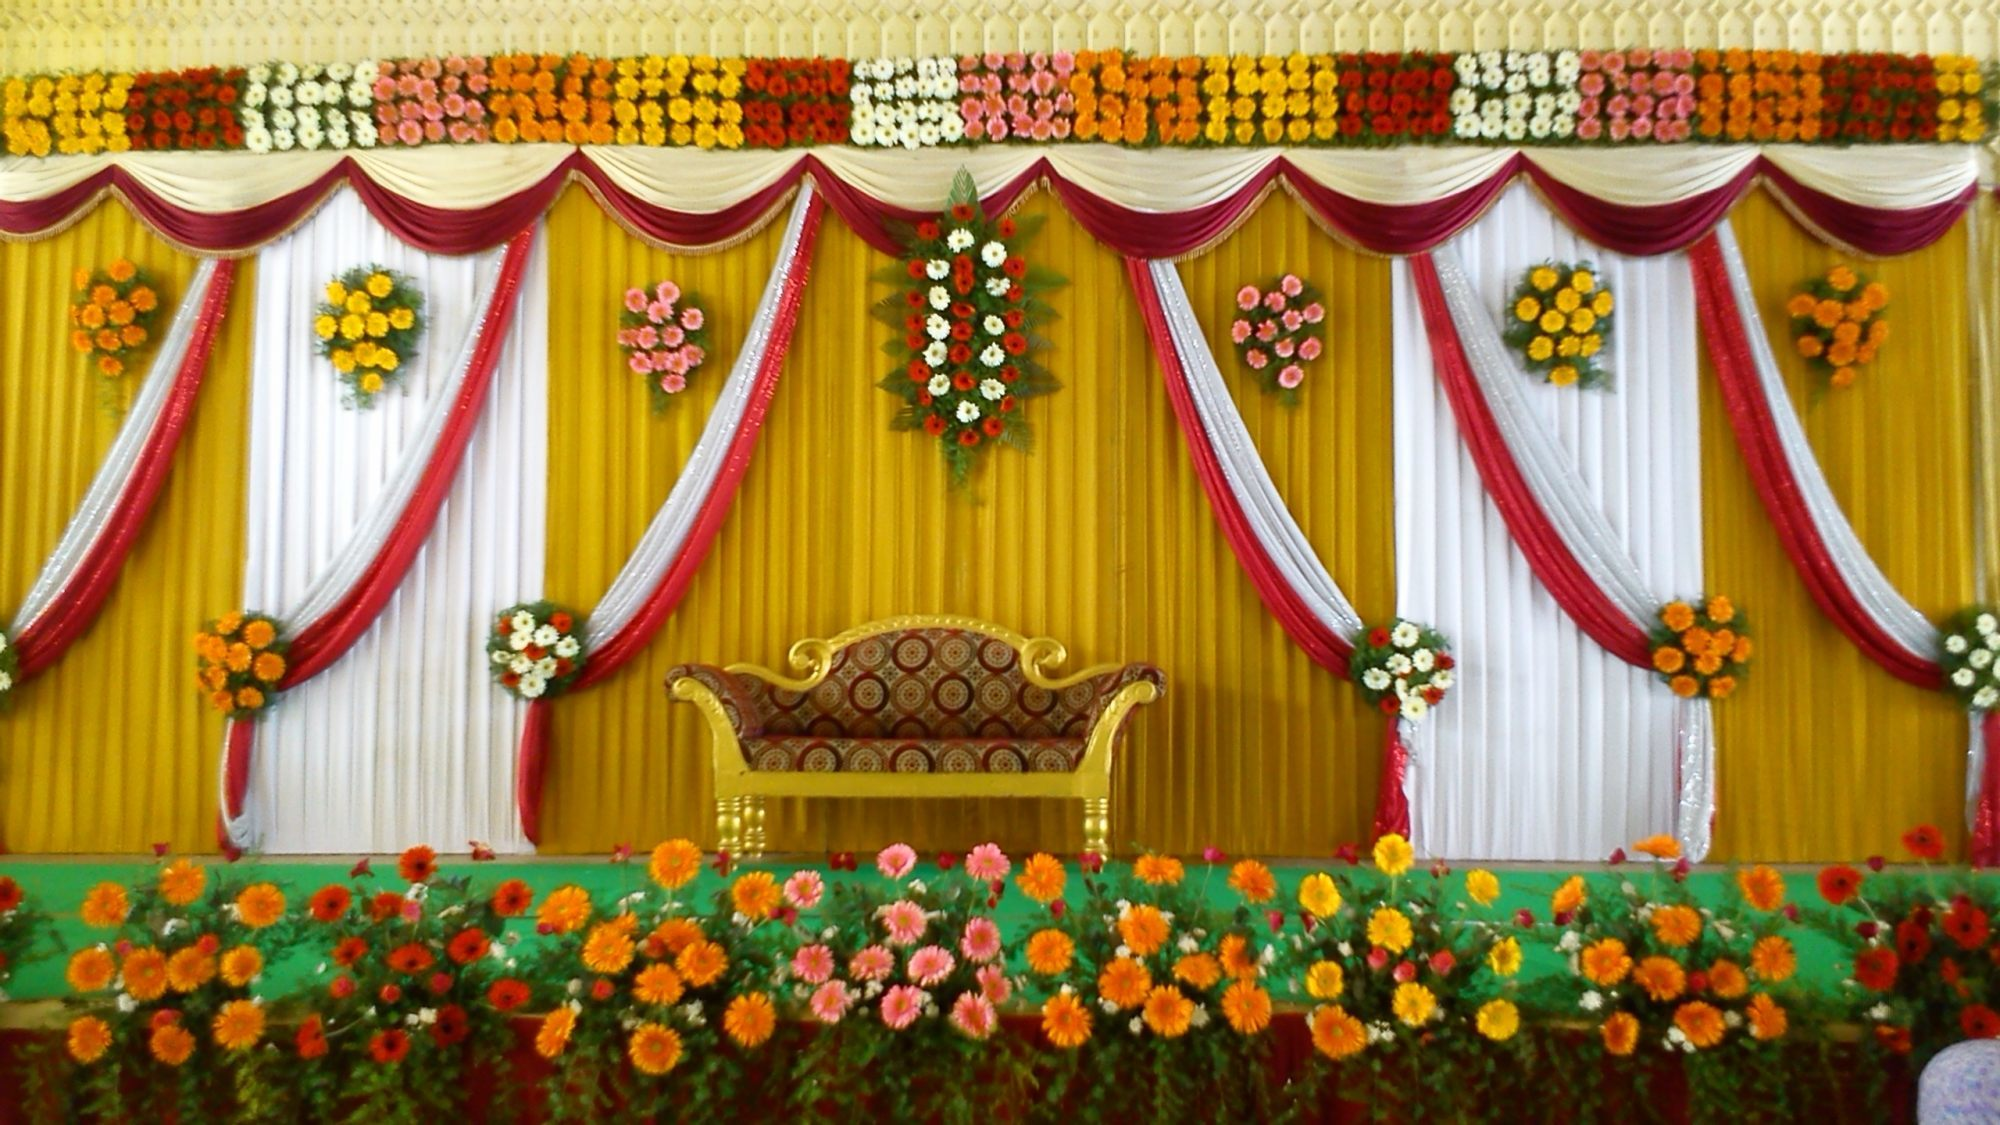 Free photo: Decoration - Pot, Party, Marriage - Free Download - Jooinn